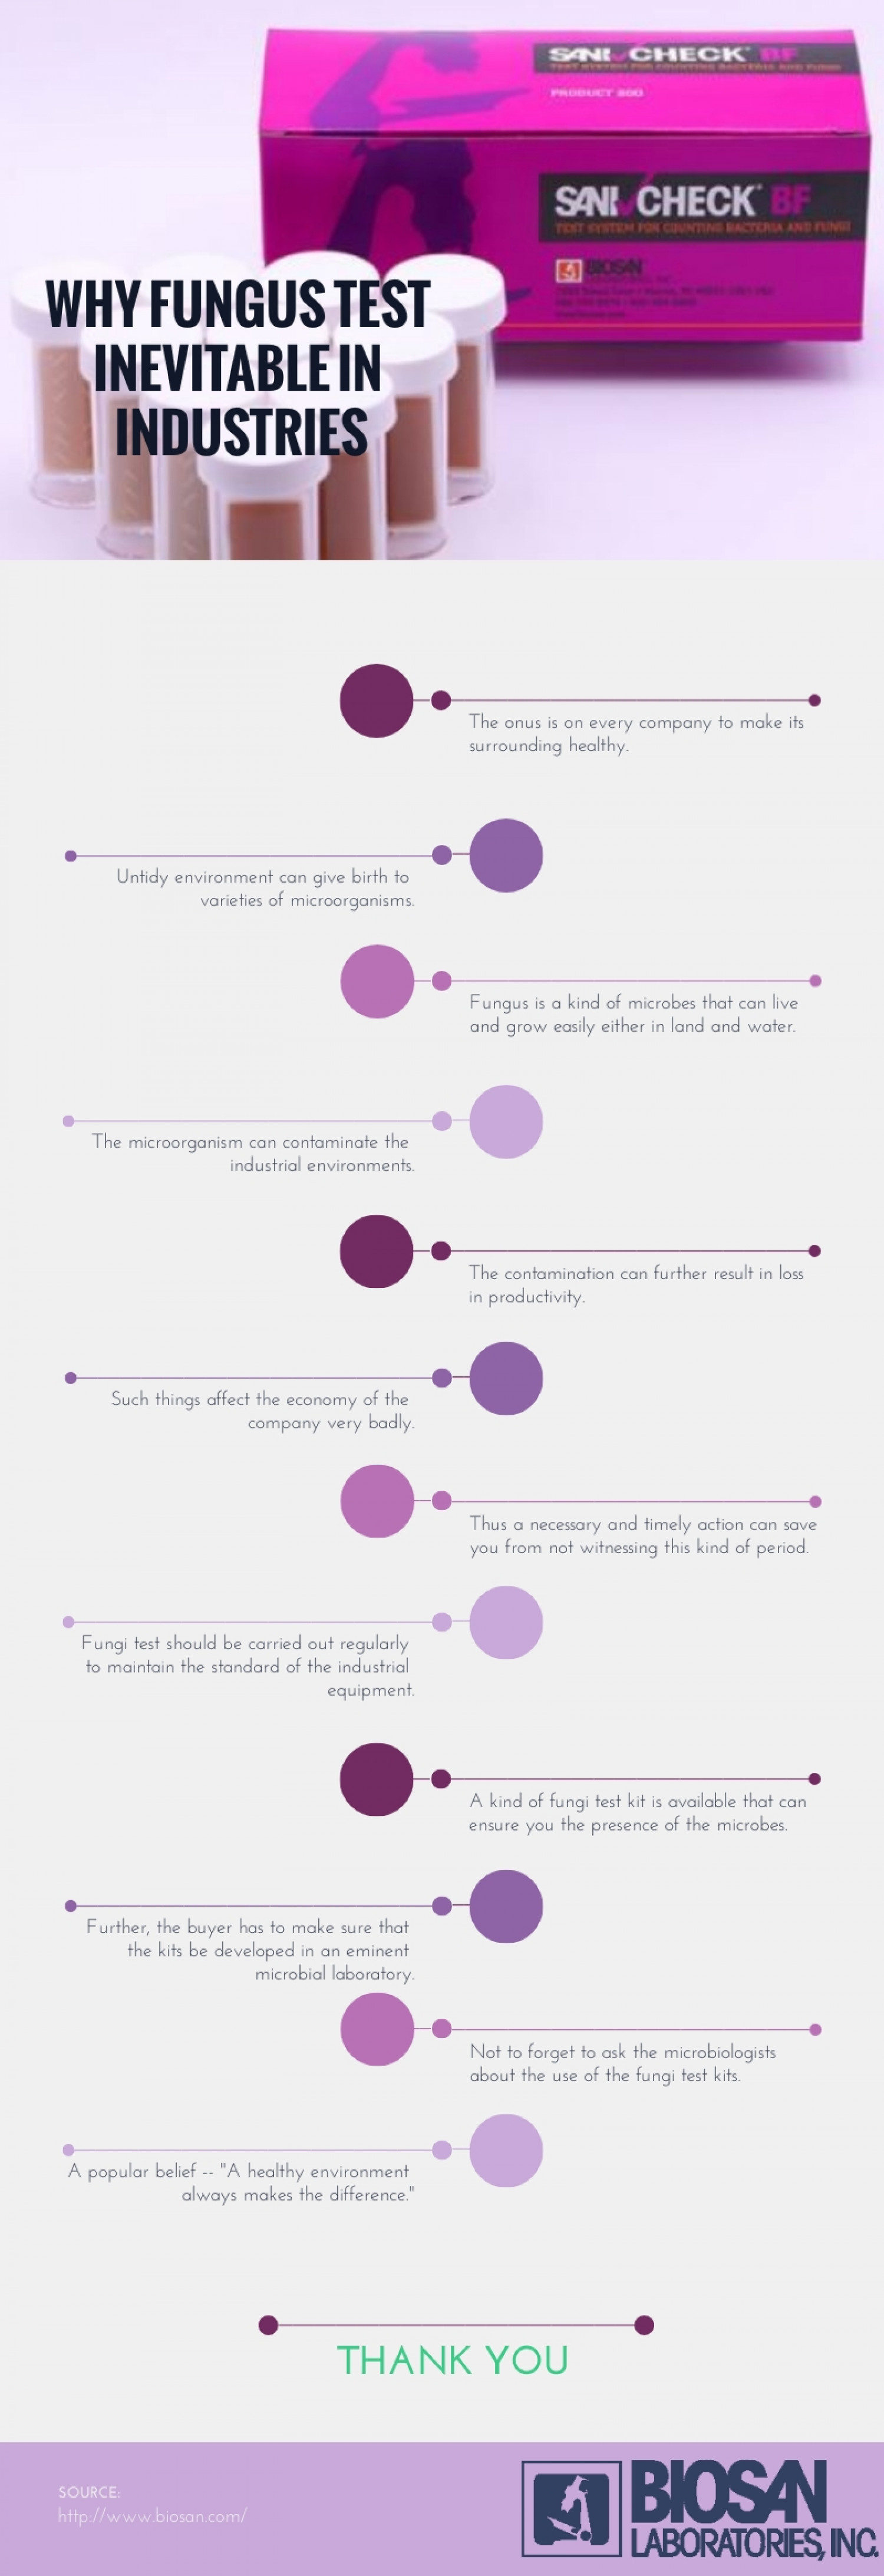 Why Fungus Test Inevitable in Industries Infographic